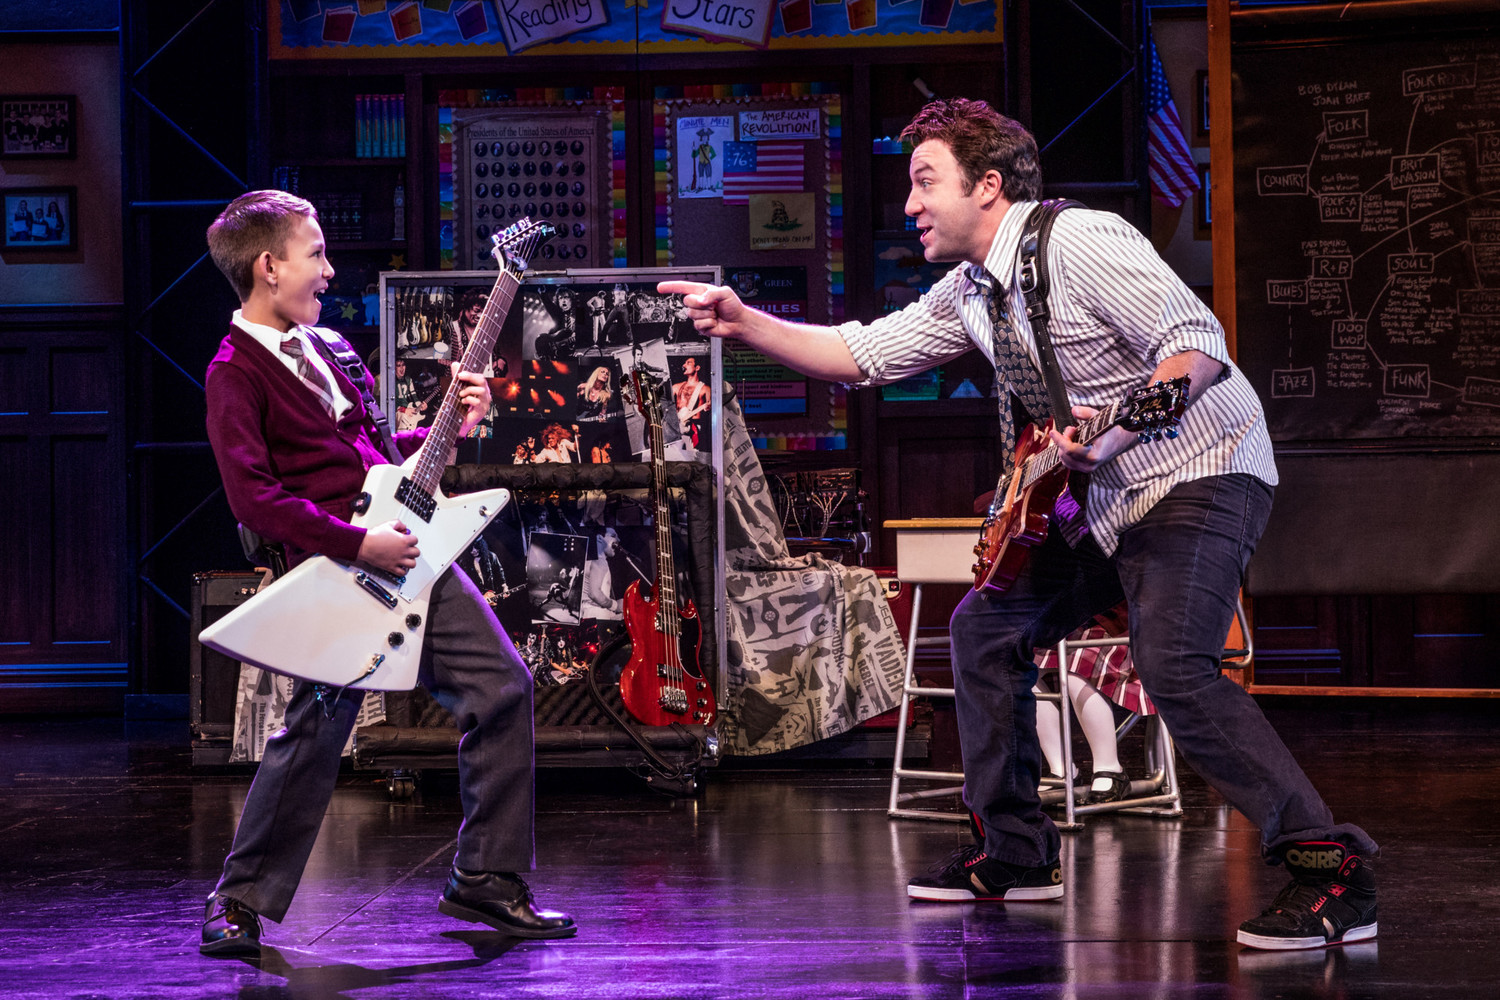 BWW Interview: Mystic Inscho of SCHOOL OF ROCK THE MUSICAL says 'The Kids Will Leave Your Jaw Dropped,' and Sends a Message to The Kids!